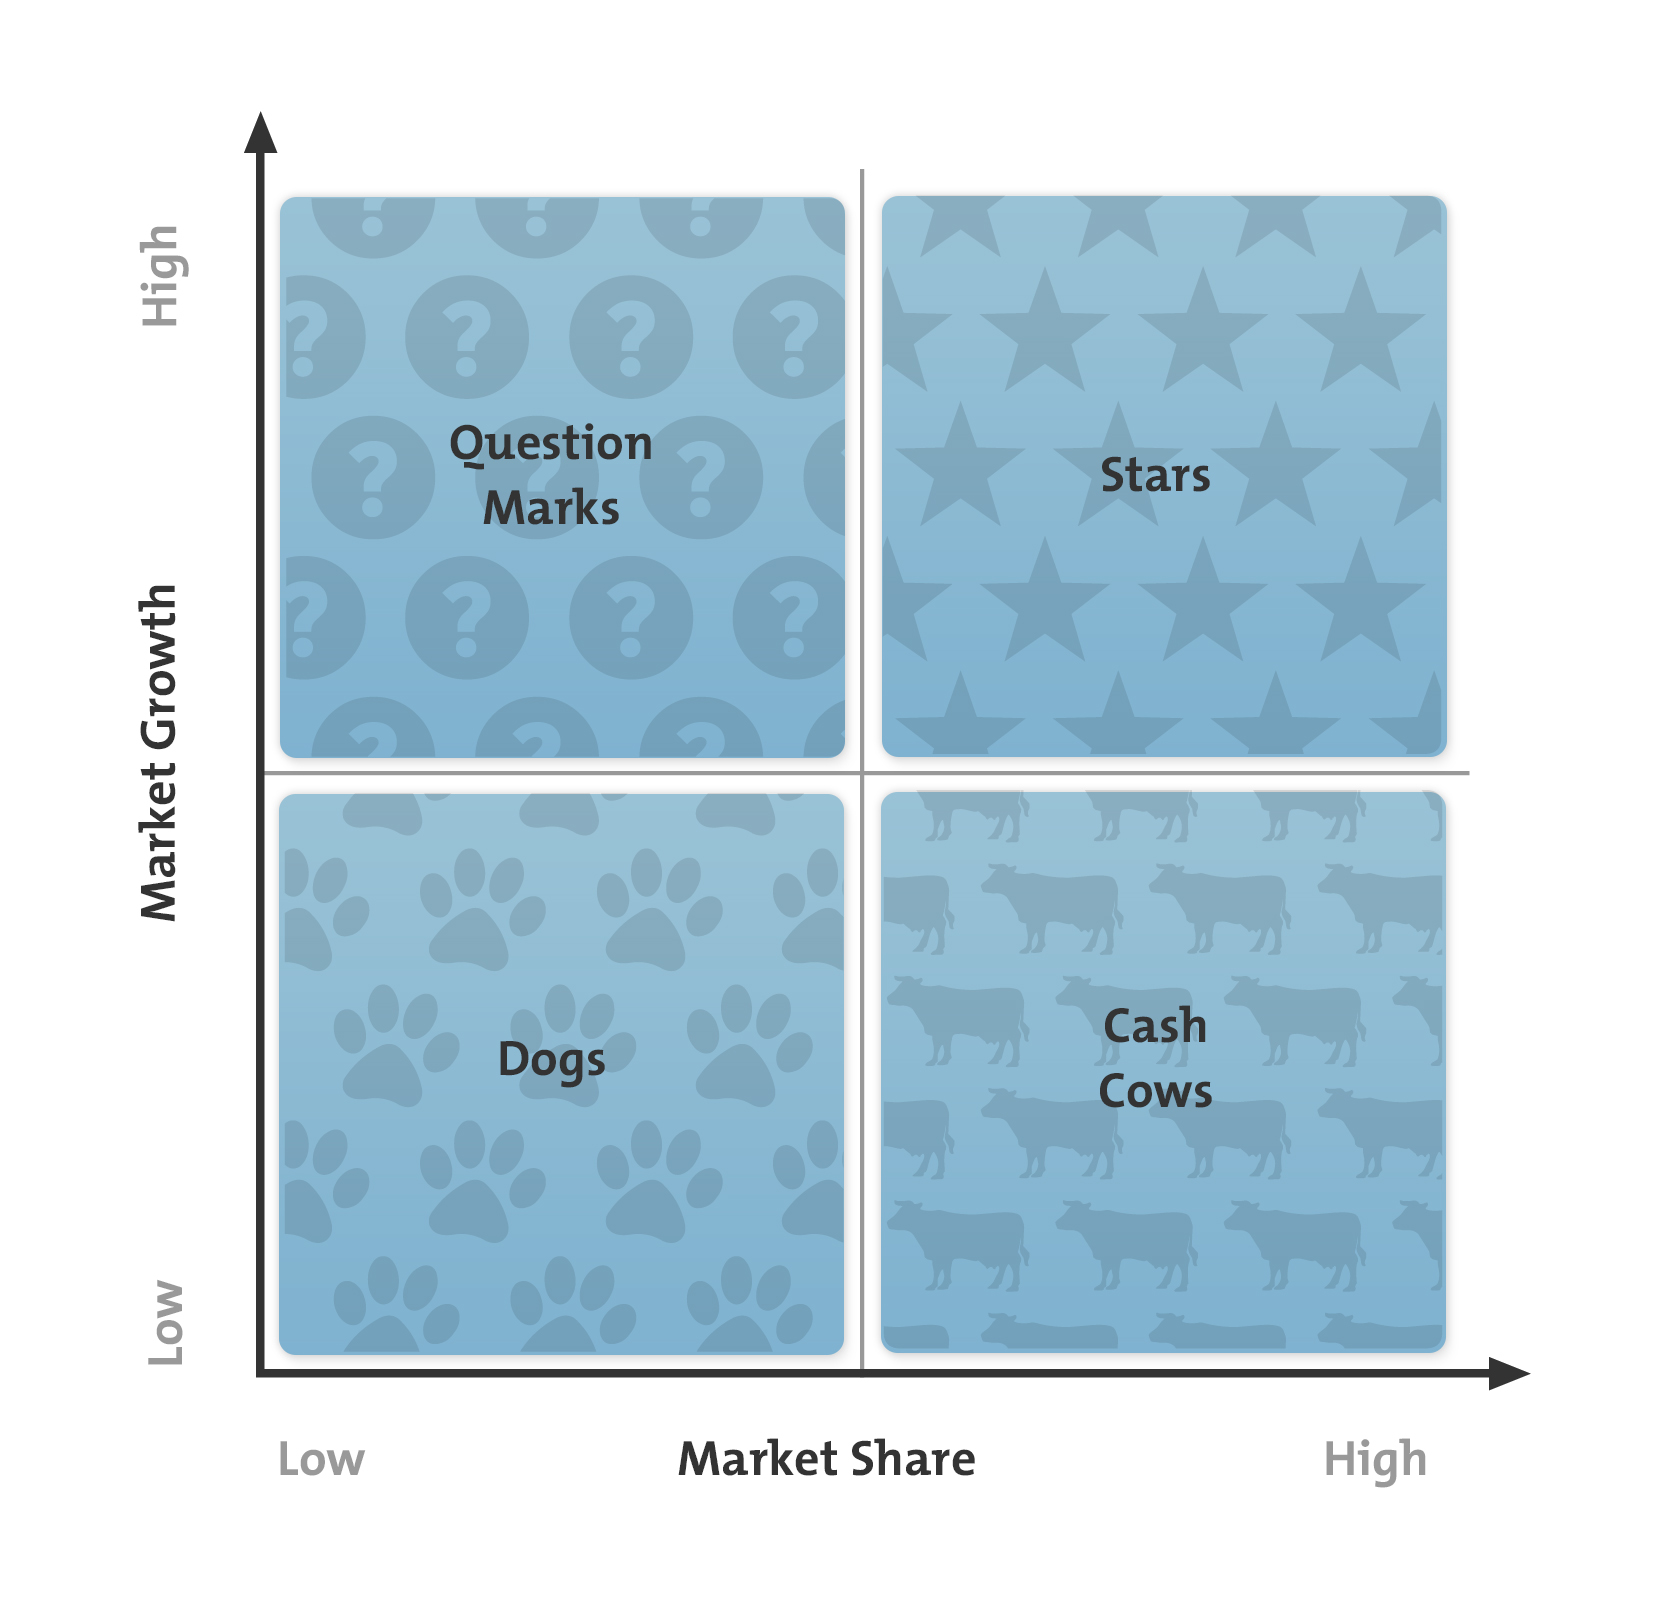 Boston Matrix Diagram: Market Share vs Market Growth